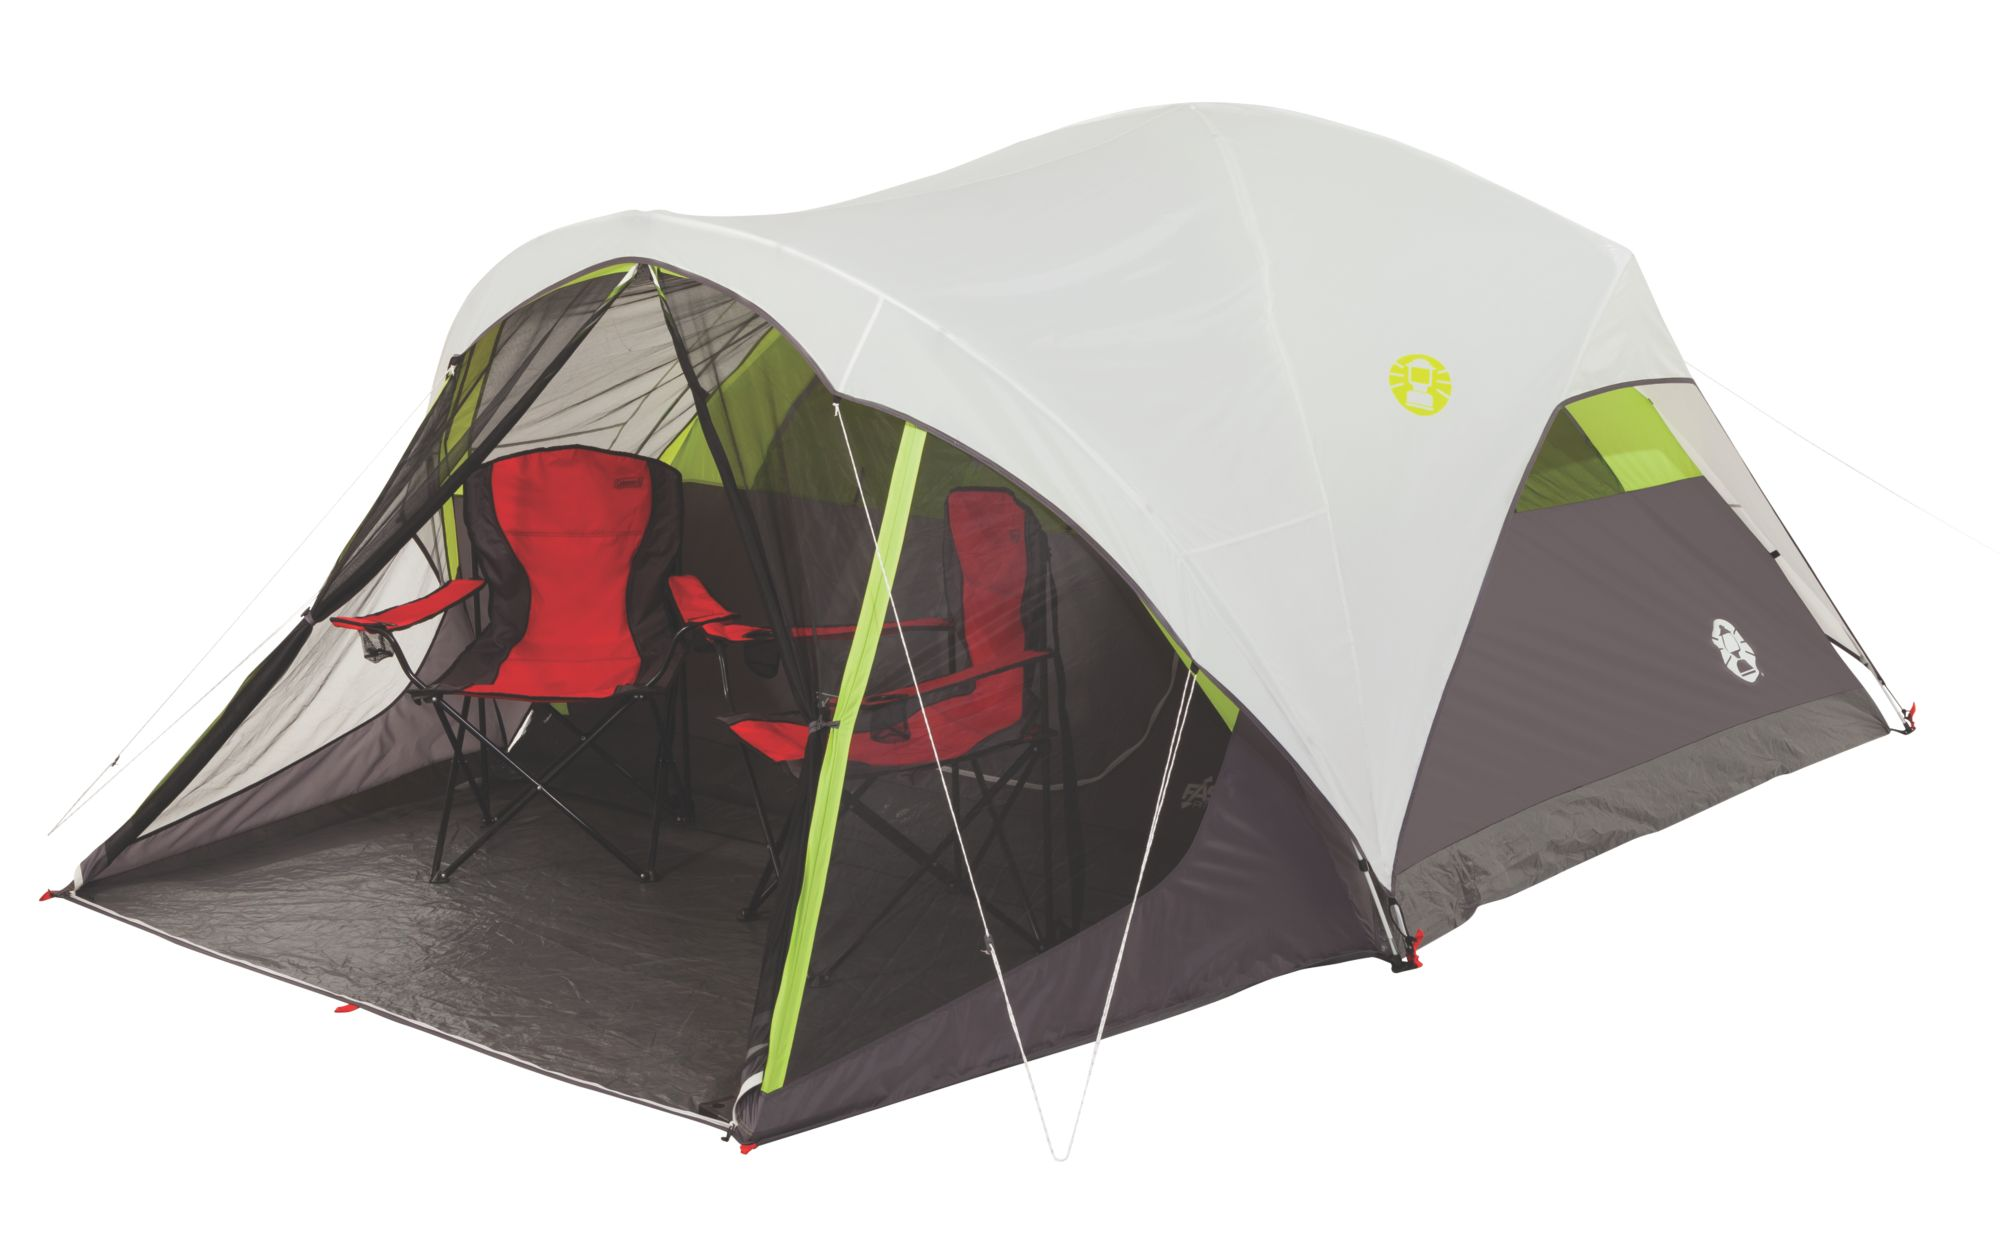 6 person tent dome tents coleman